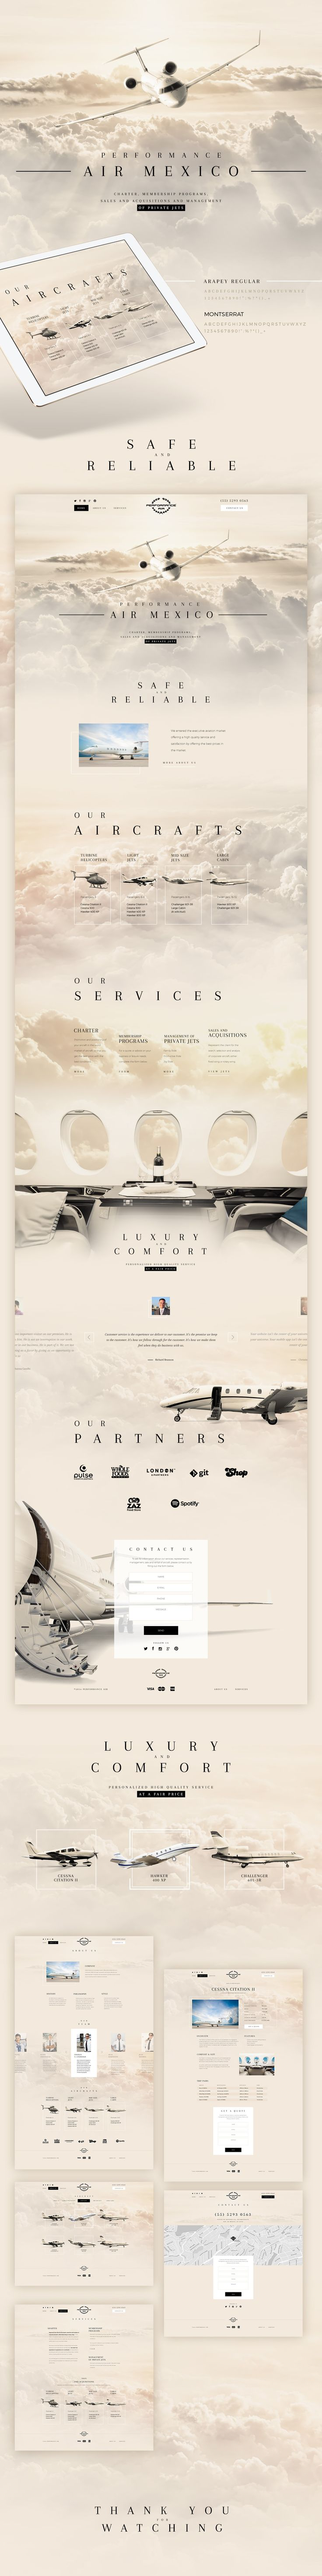 Mexican private jet´s company. Charter, Membership Programs, Sales and Acquisitions and Management of private jets.